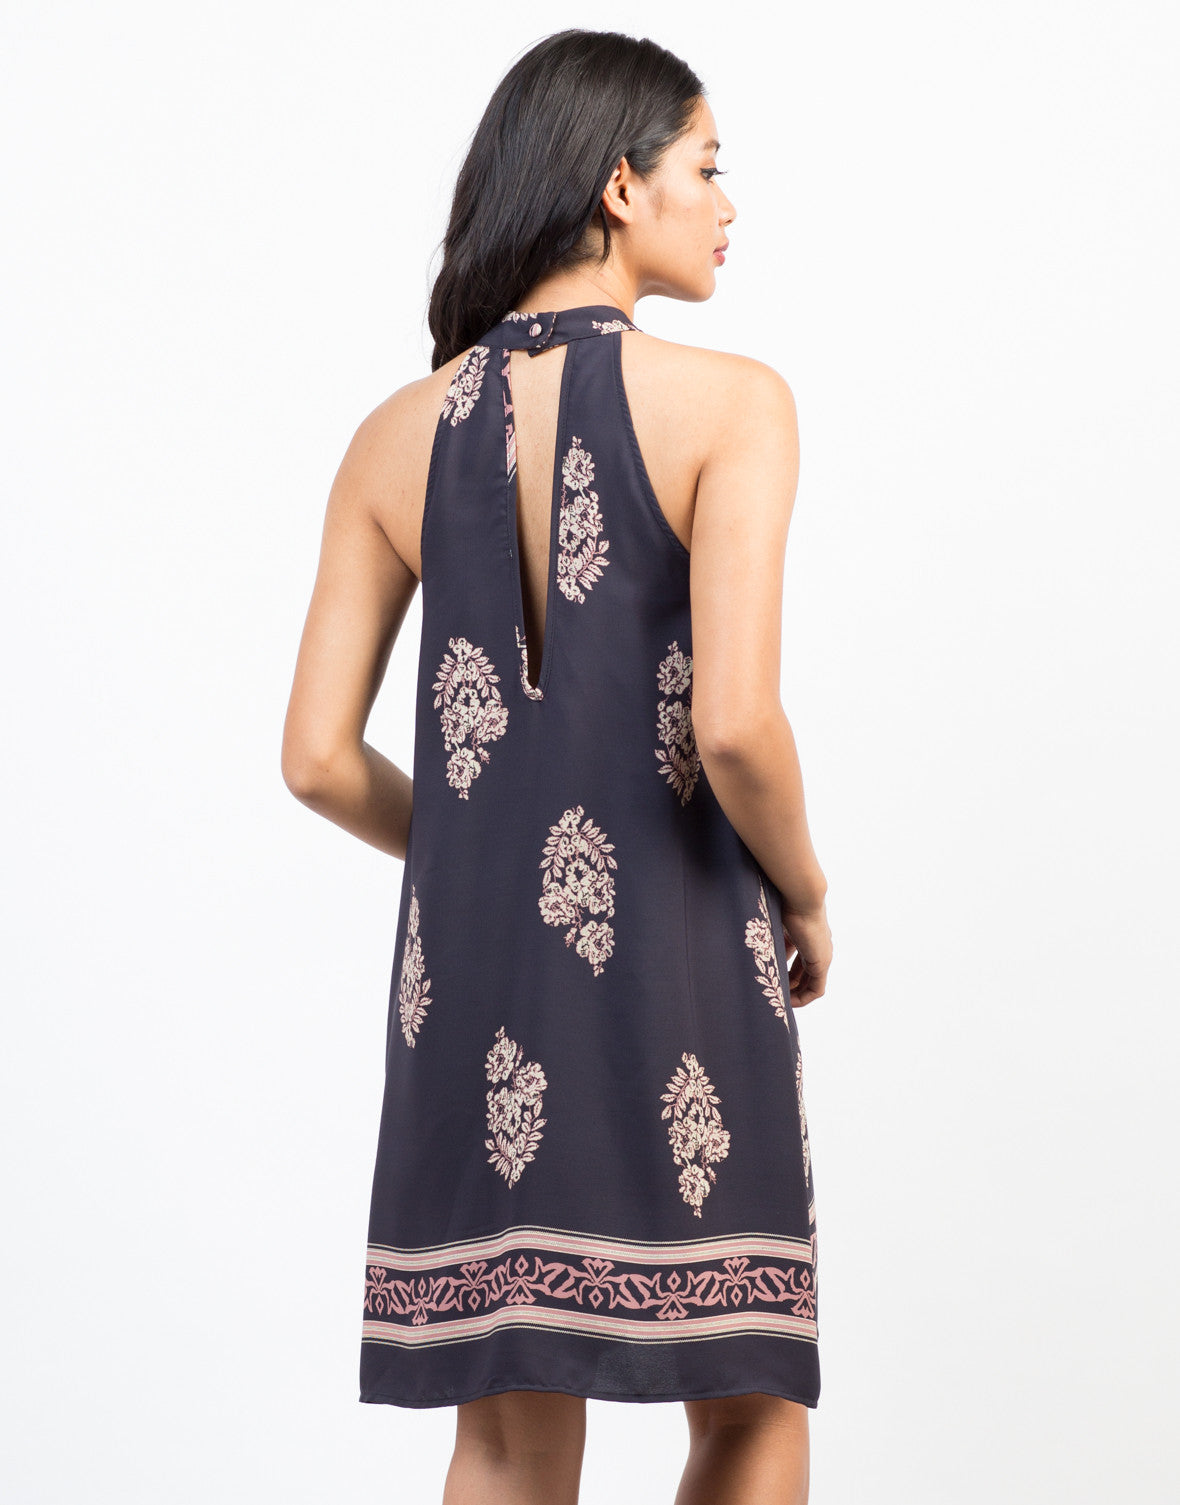 Back View of Autumn Floral Shift Dress